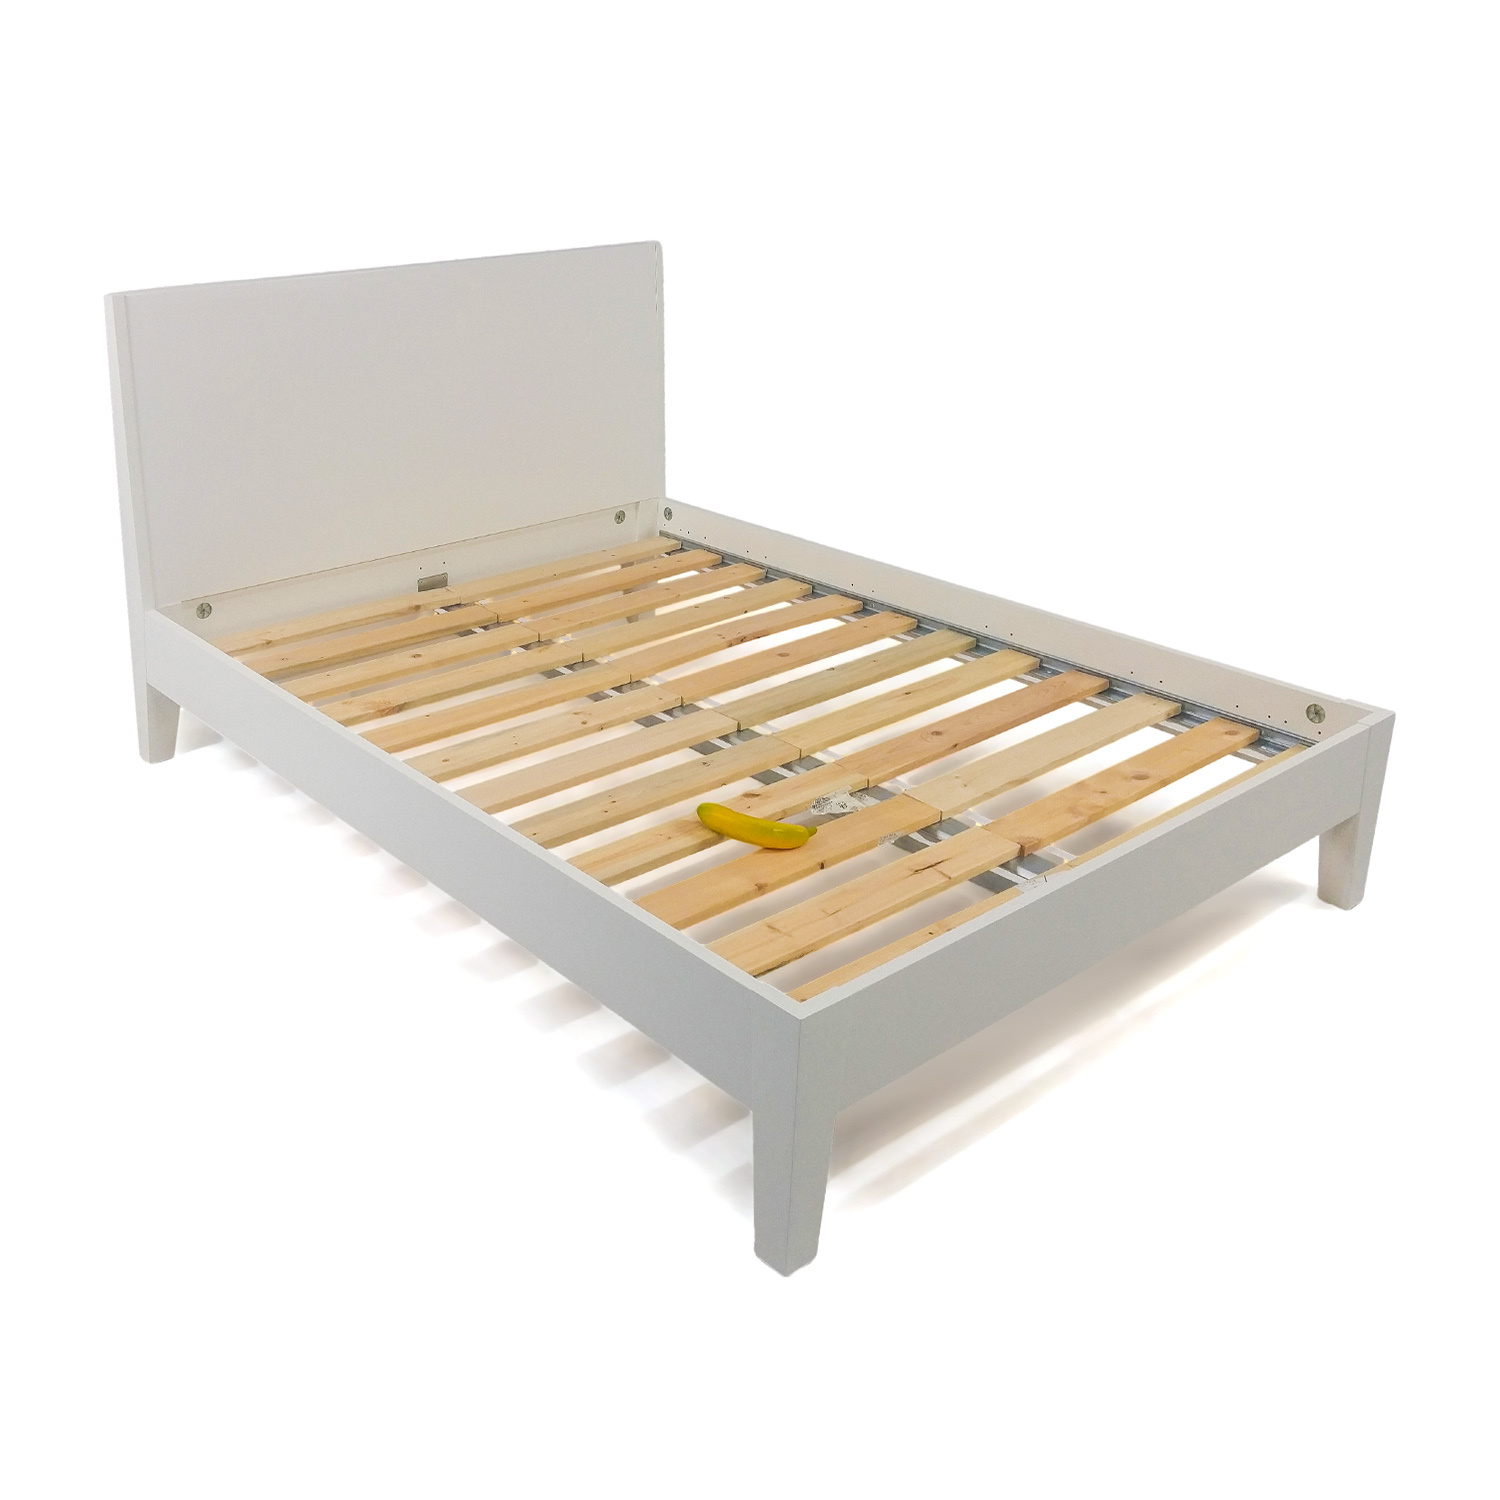 50 off ikea full malm bed frame beds for Ikea mattress frame